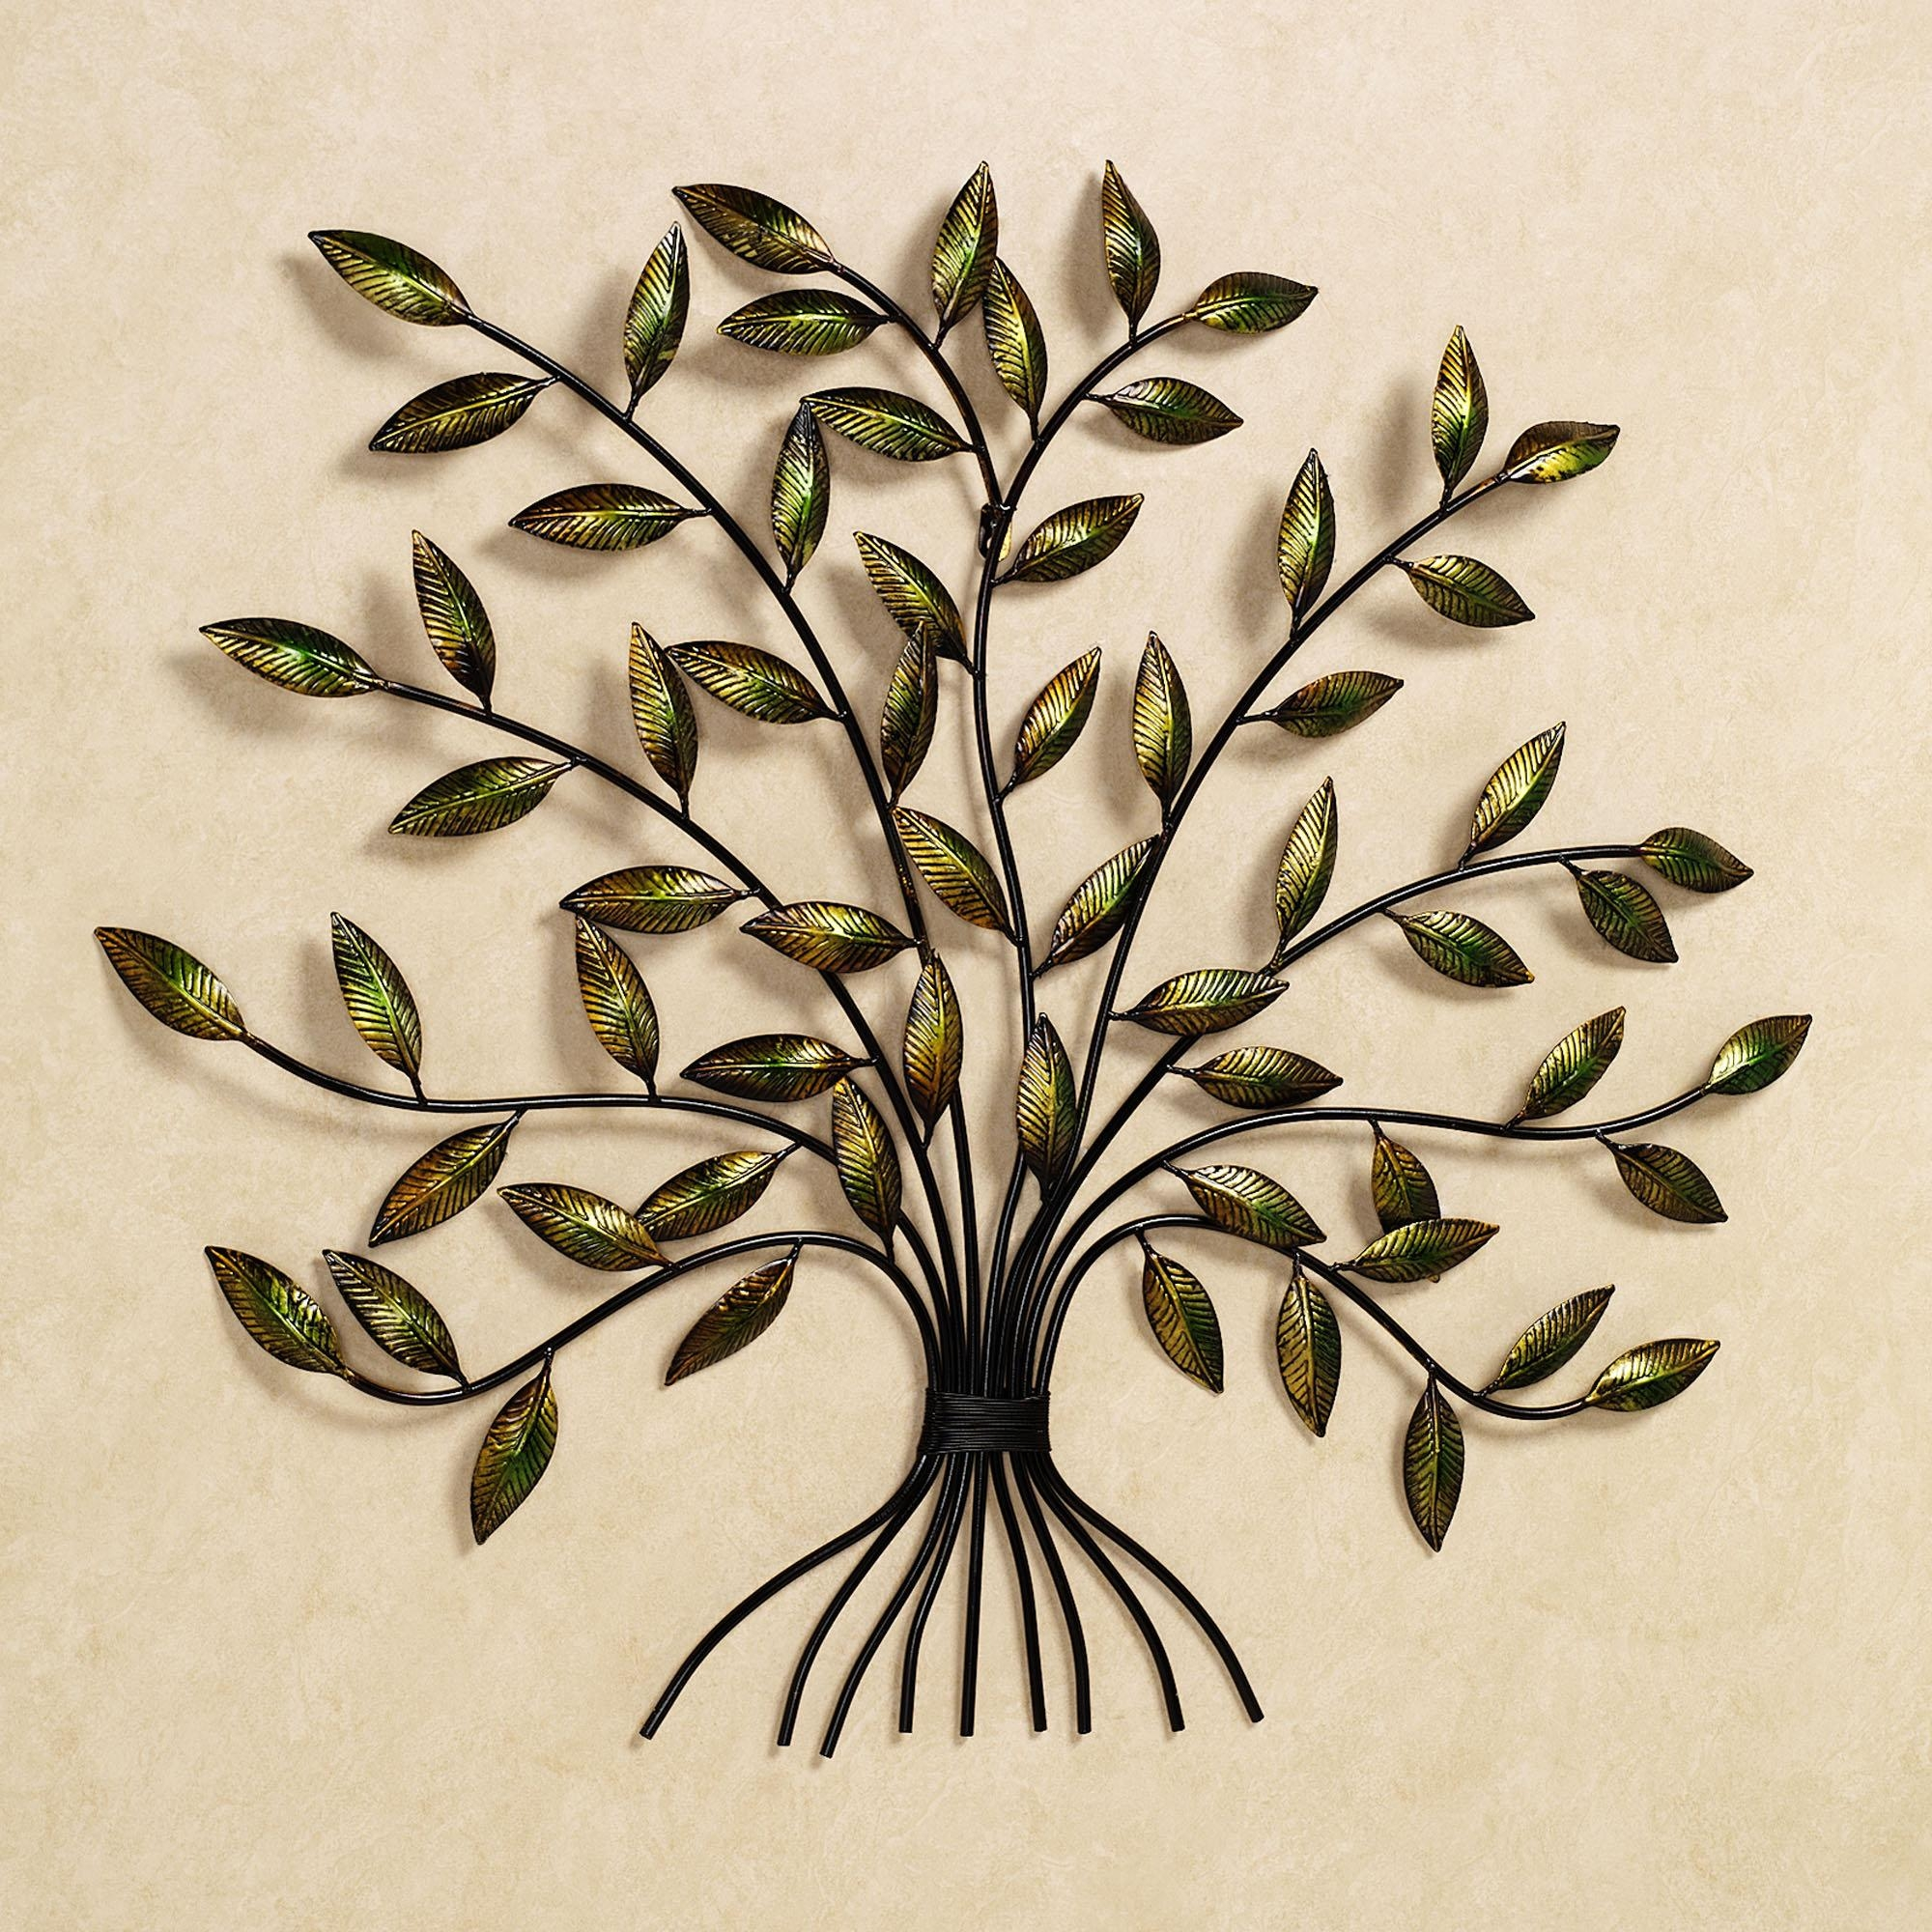 Wall Art Ideas Design : Target Home Design Tree Metal Wall Art Intended For Metal Wall Art Trees And Branches (Image 18 of 20)